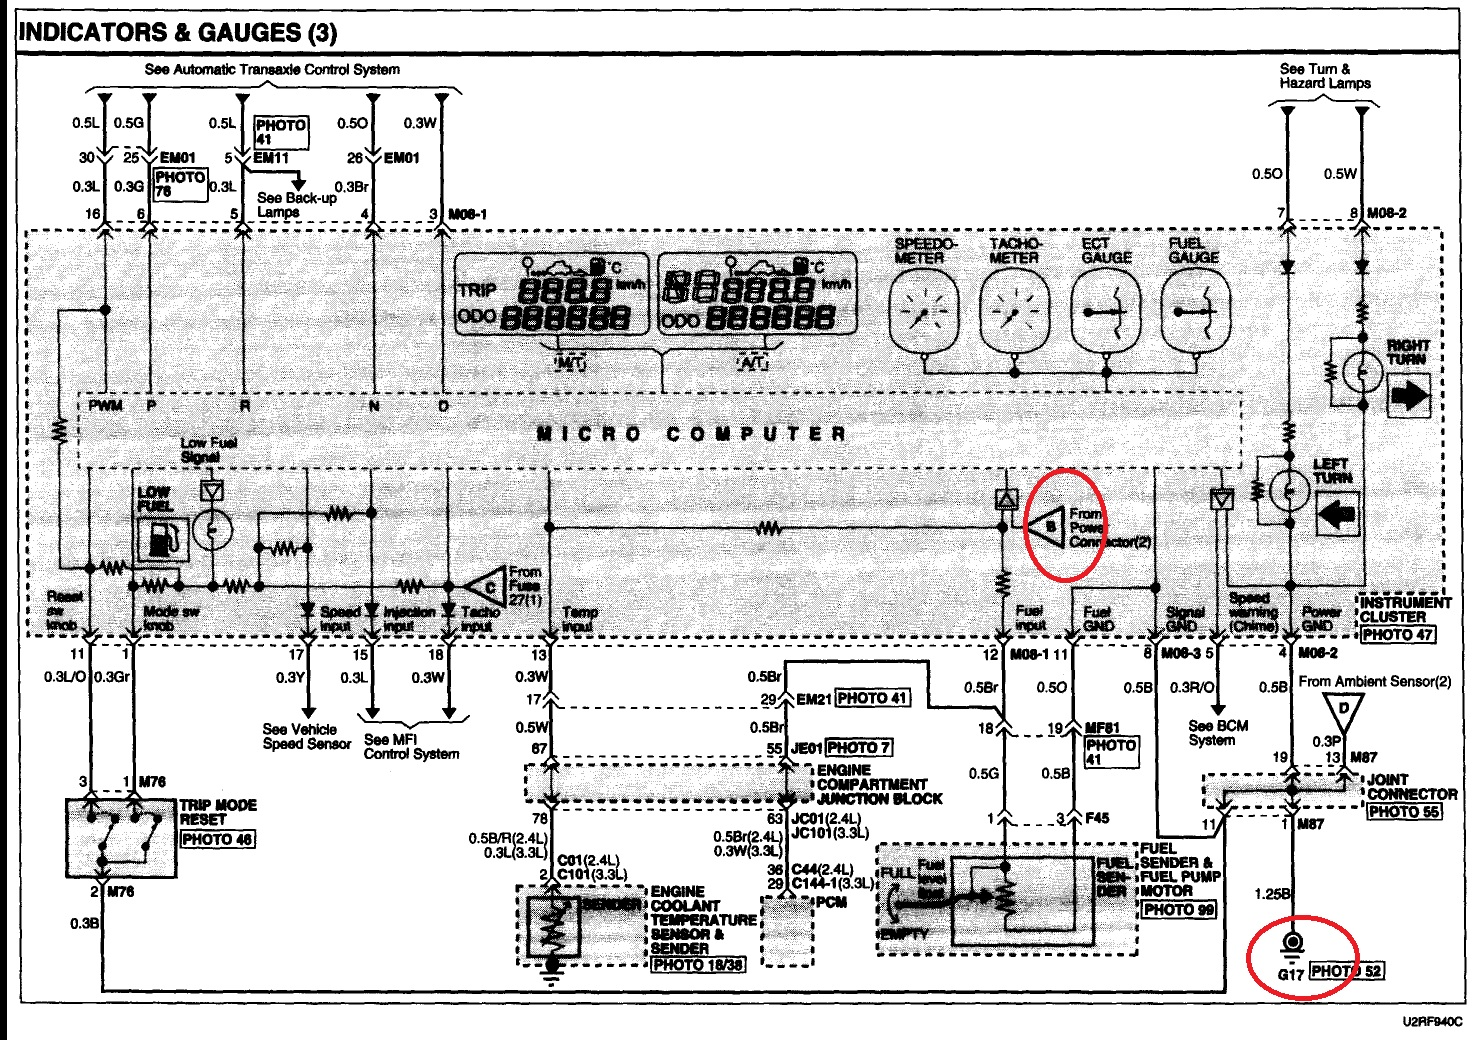 2015 Hyundai Sonata Fuse Diagram Another Blog About Wiring 2012 Box Engine Get Free Image Location Radio